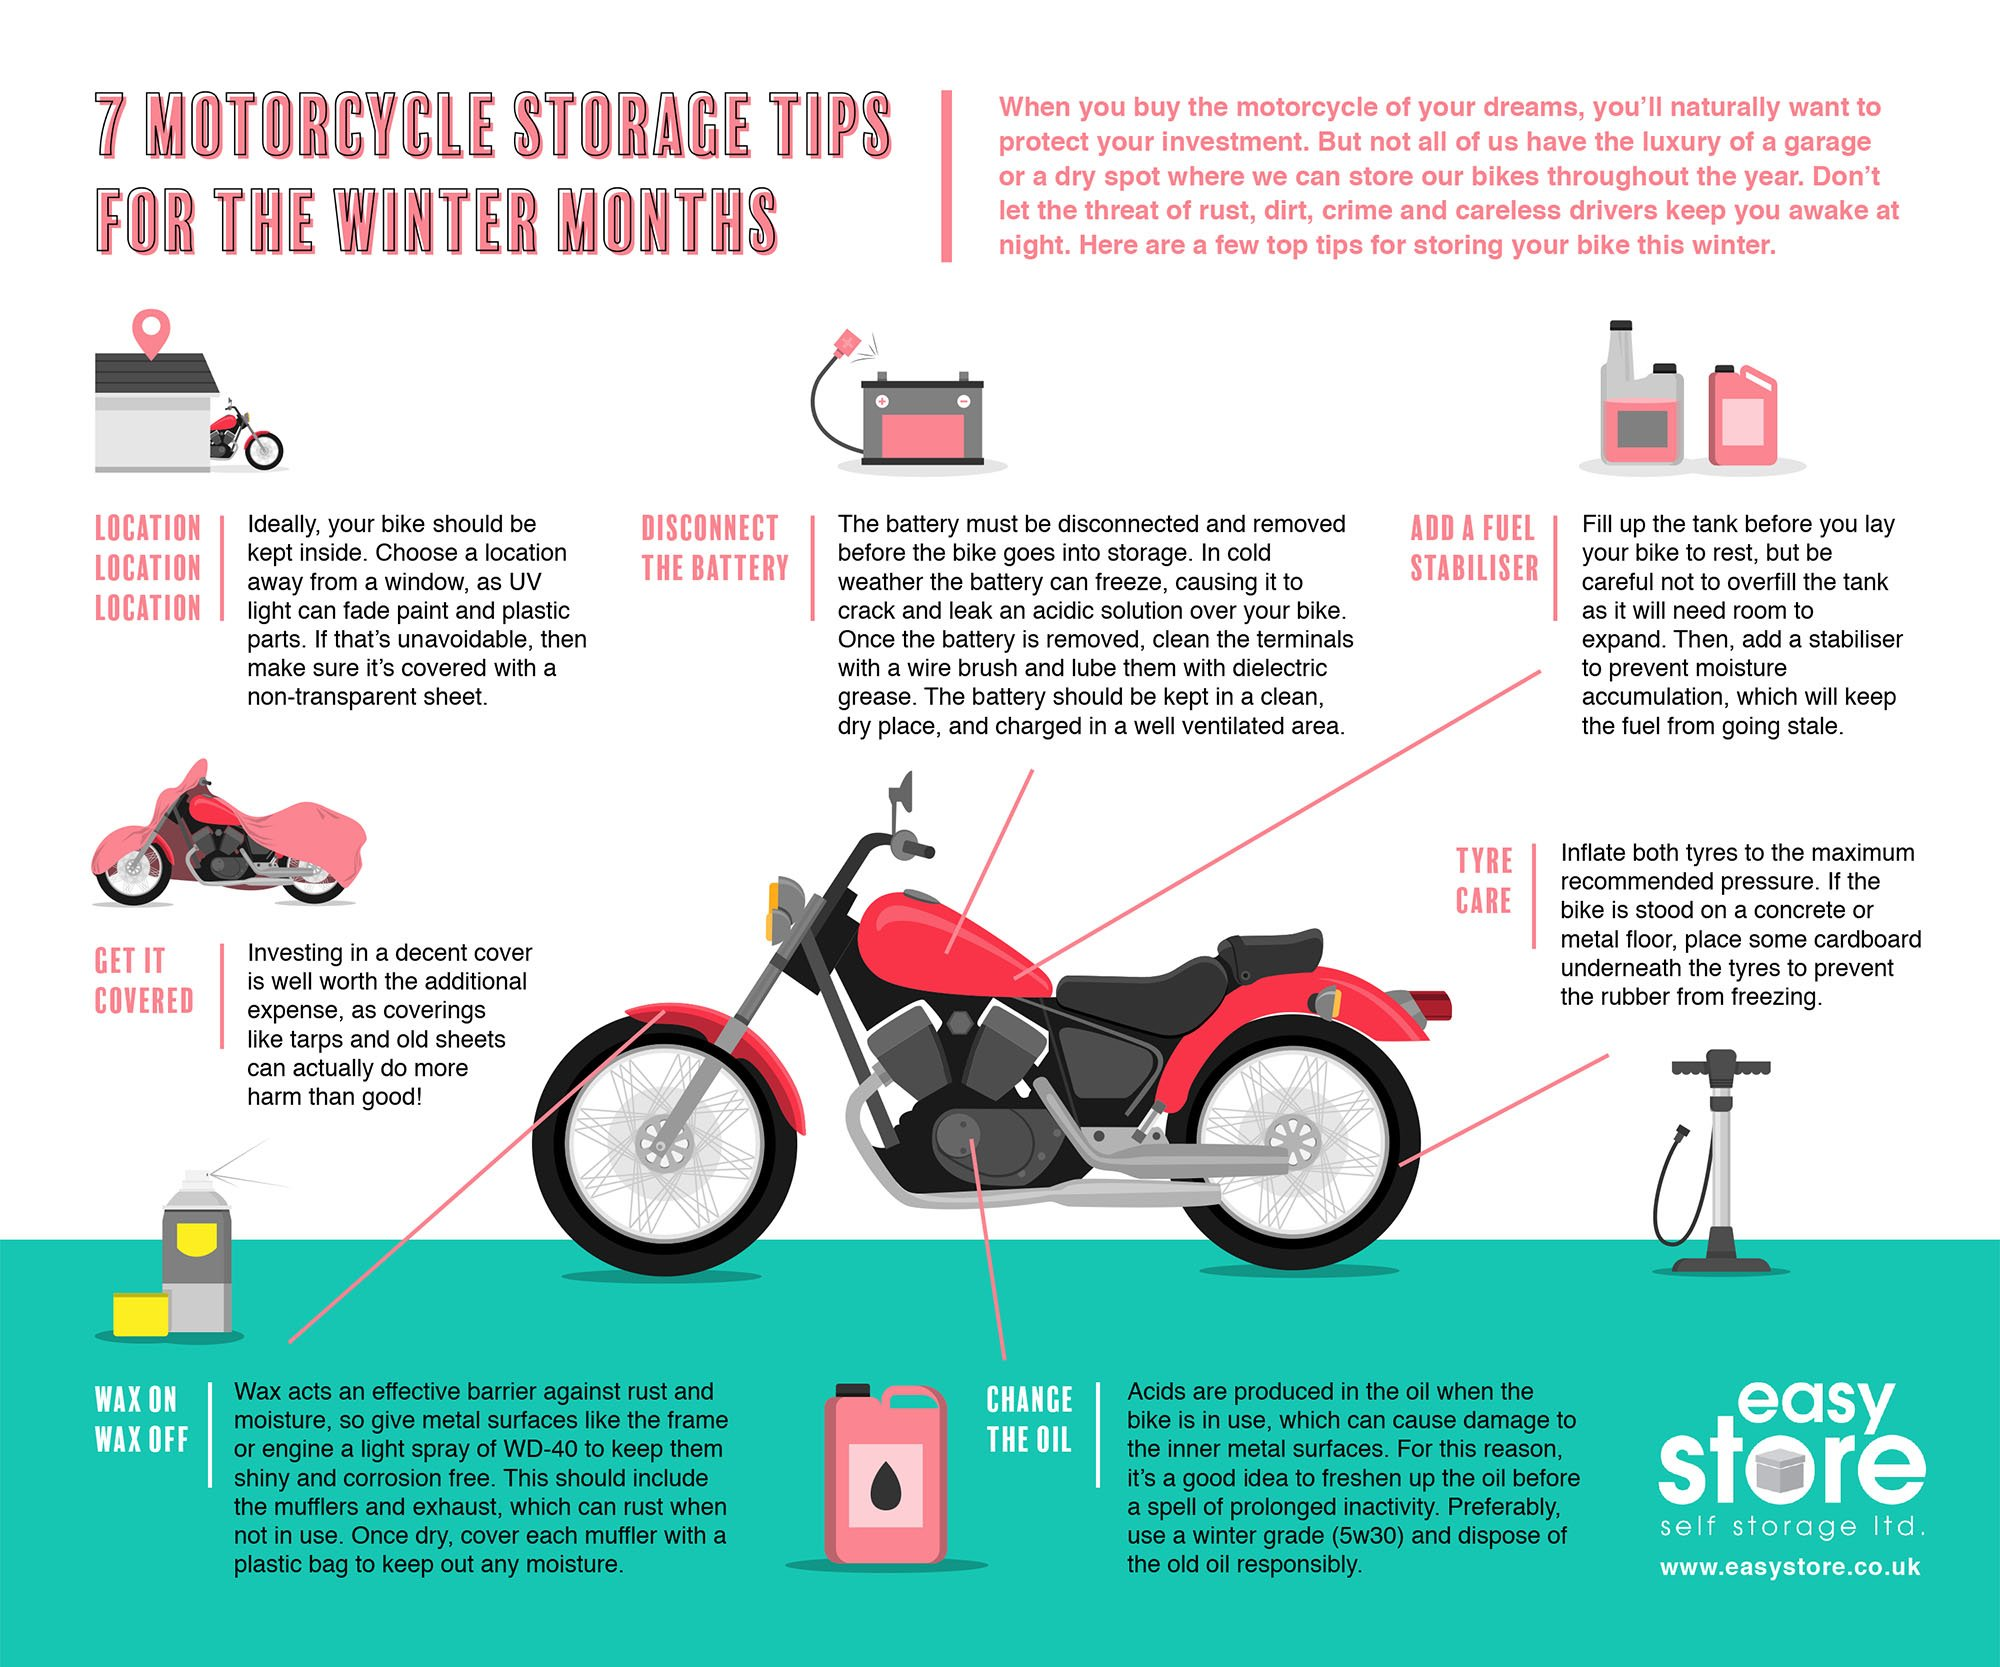 Motorcycle Storage Tips